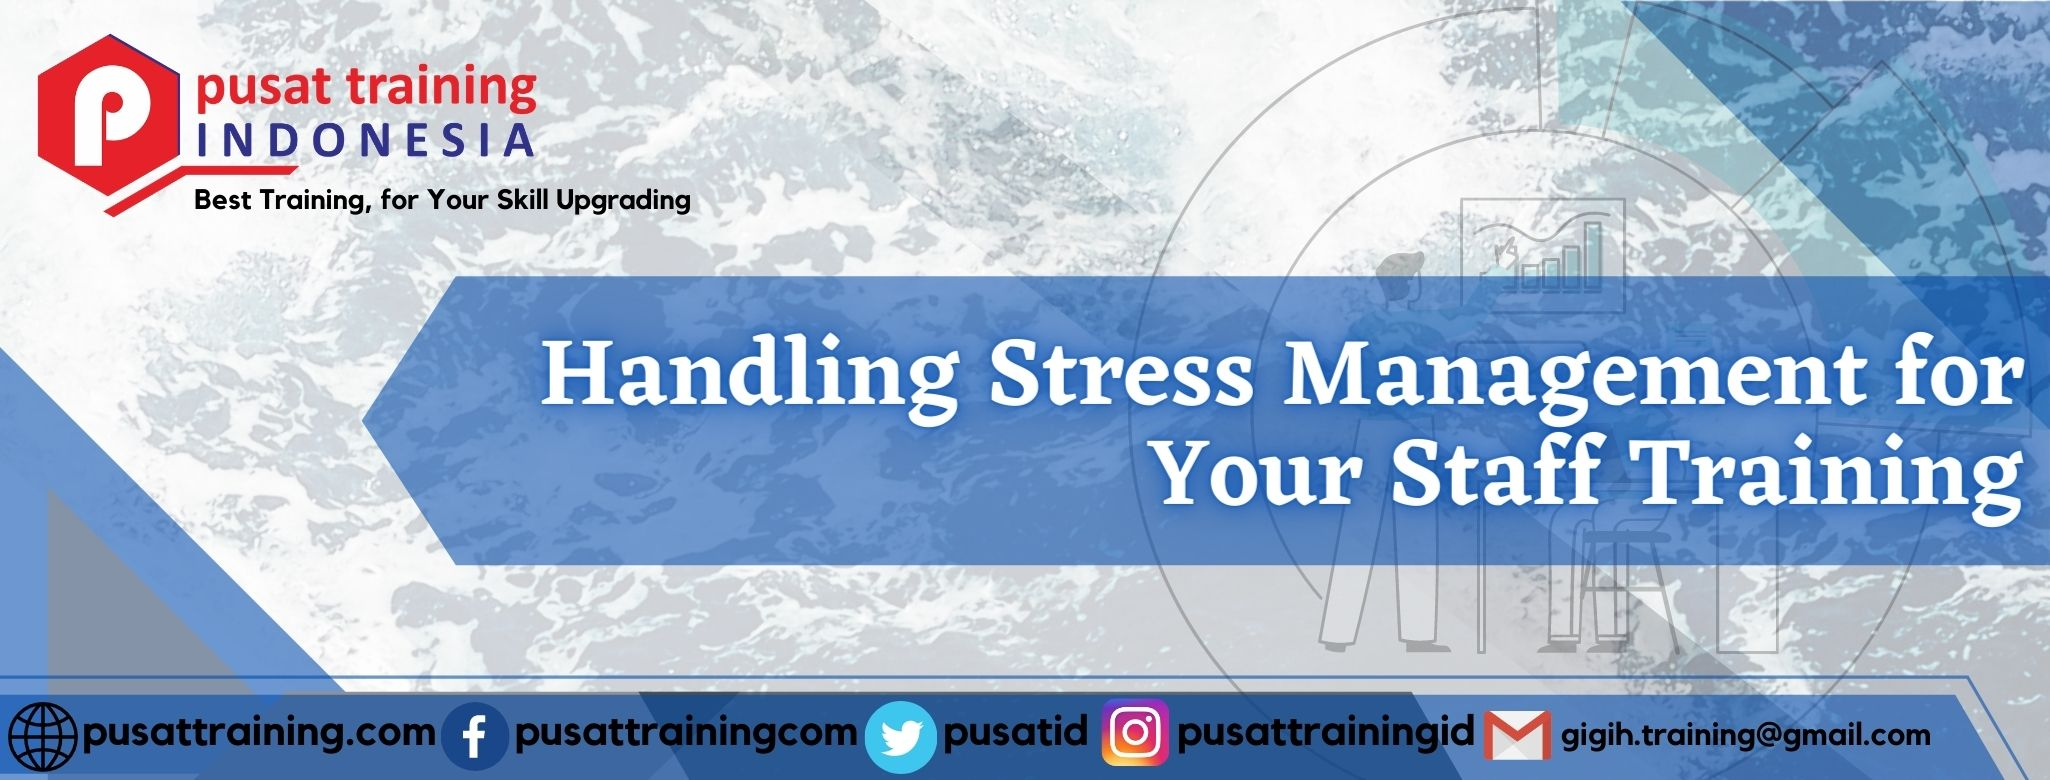 Handling-Stress-Management-for-Your-Staff-Training